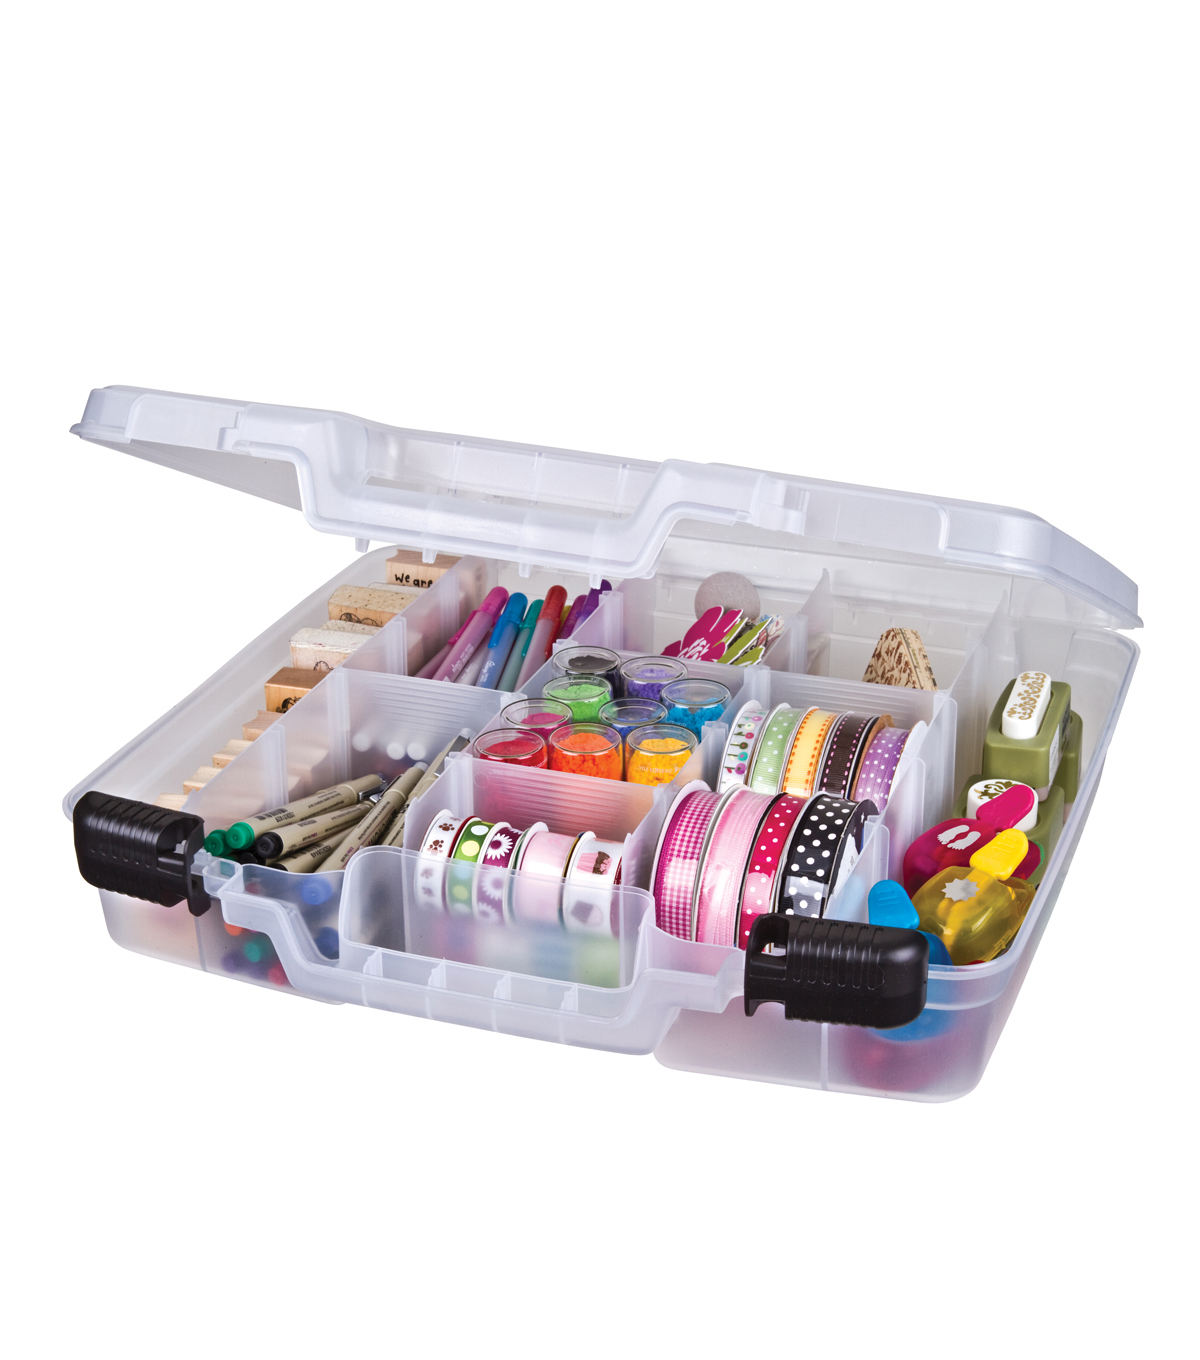 Organizing Essentials 15\u0027\u0027 Quickview Case with Removable Dividers